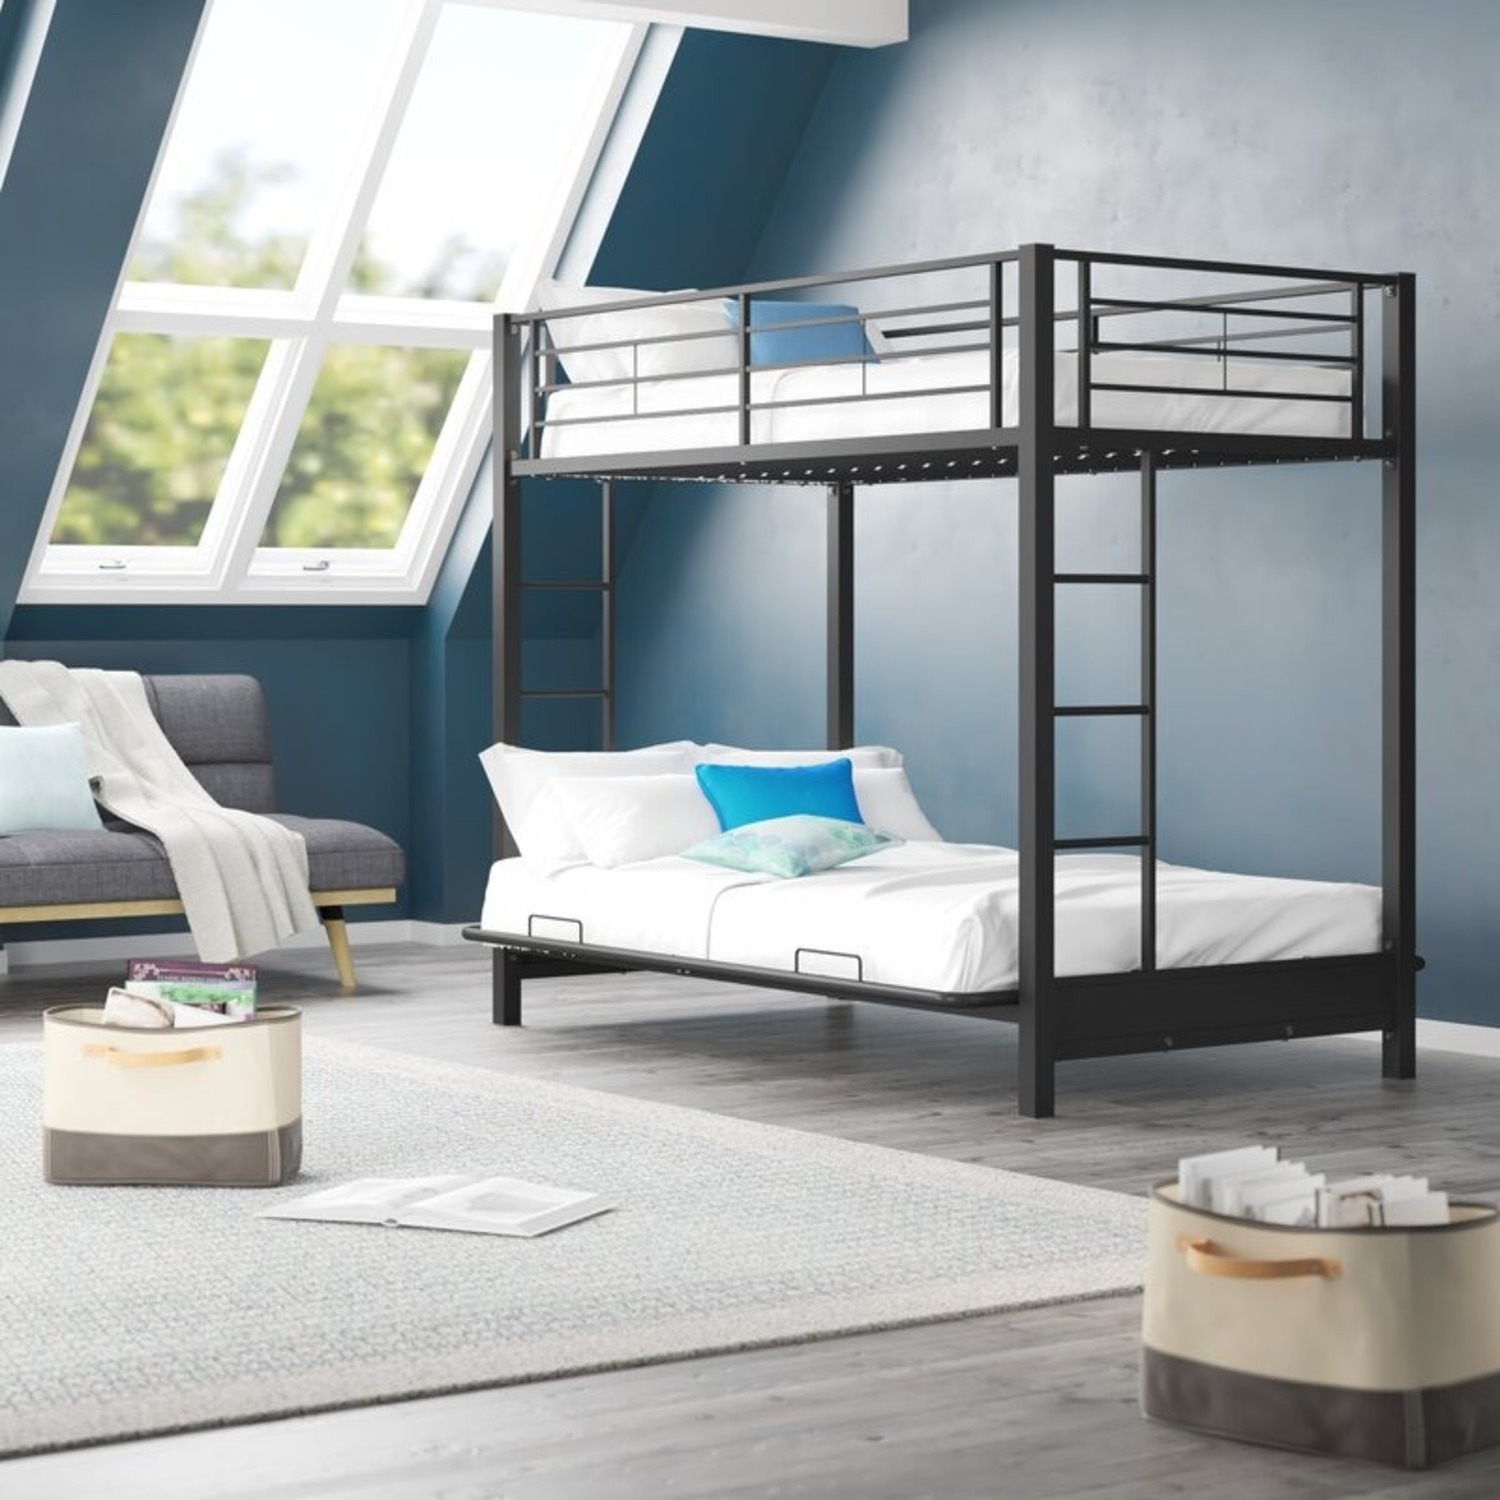 Wayfair Exmore Twin Over Full Metal (with Futon) Bunk Bed - image-2